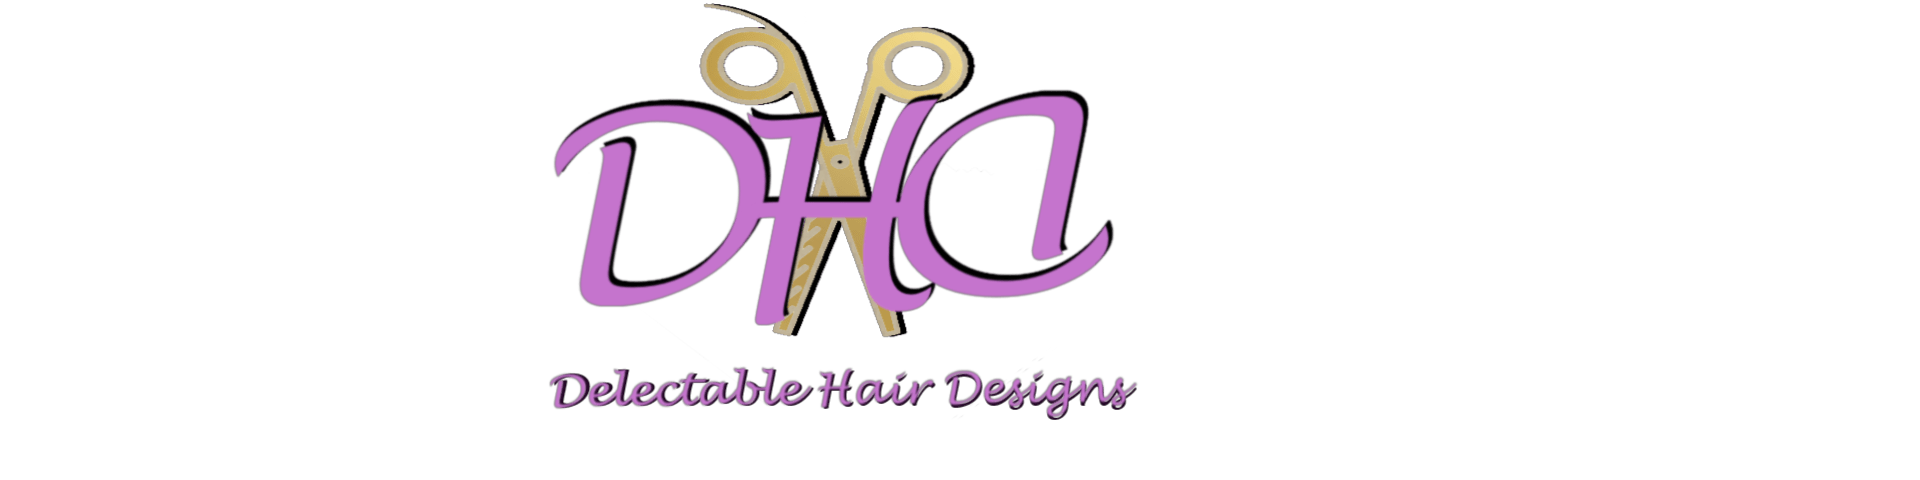 Delectable Hair Designs Beauty Salon